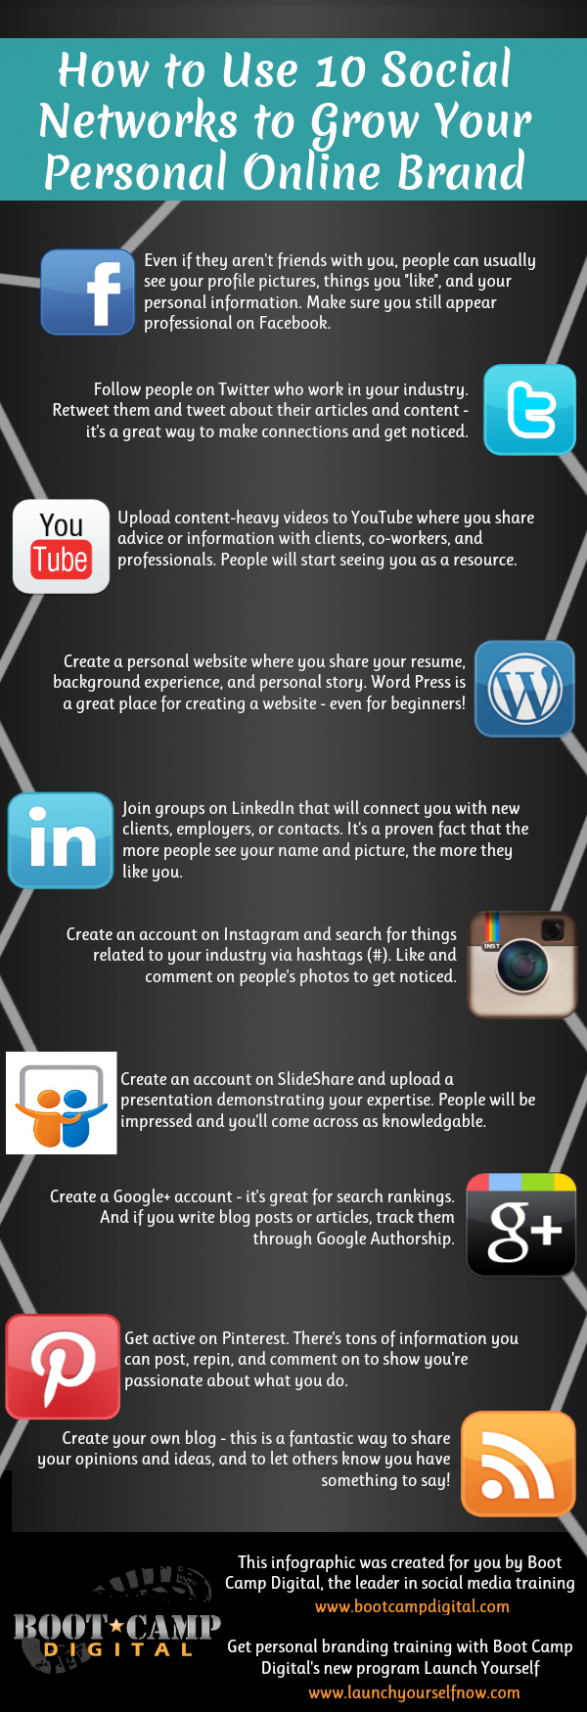 How to Use 10 Social Networks to grow Your Personal Brand